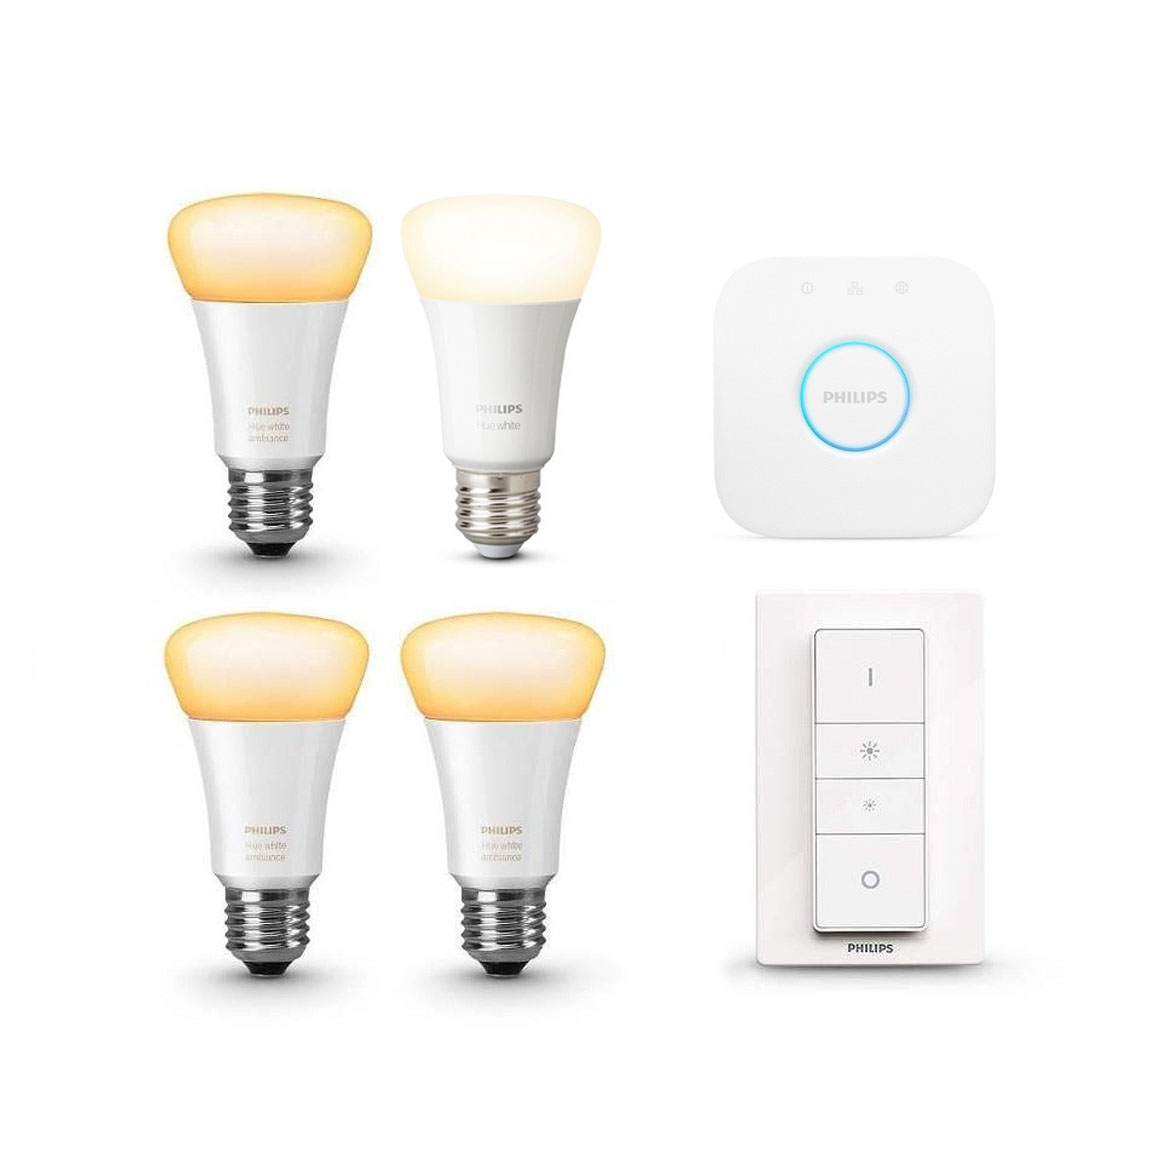 Philips Hue White Ambiance E27 Bluetooth Starter Kit + gratis Lampe